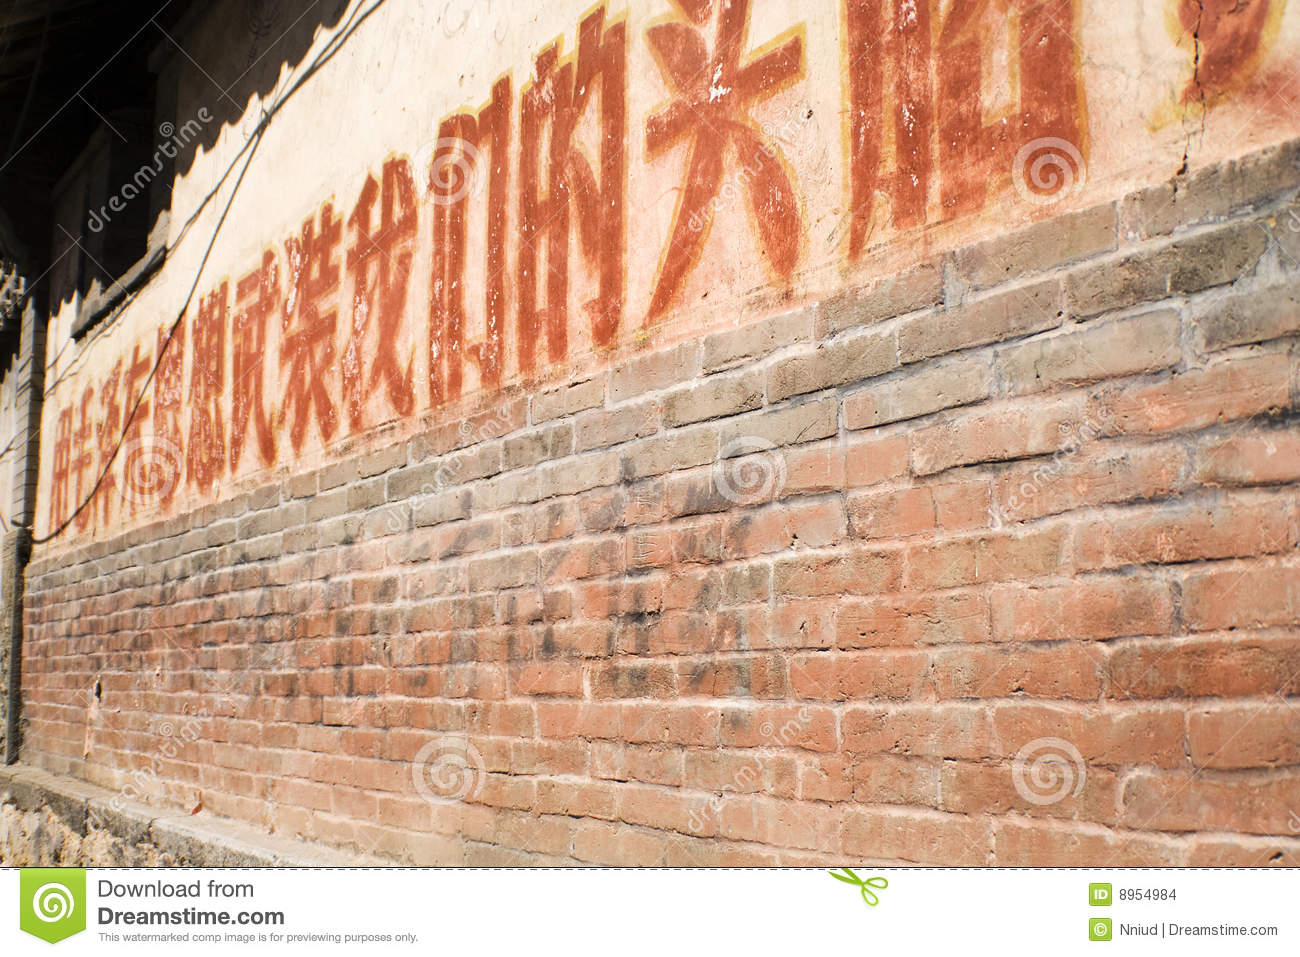 Cultural revolution slogans on an old wall